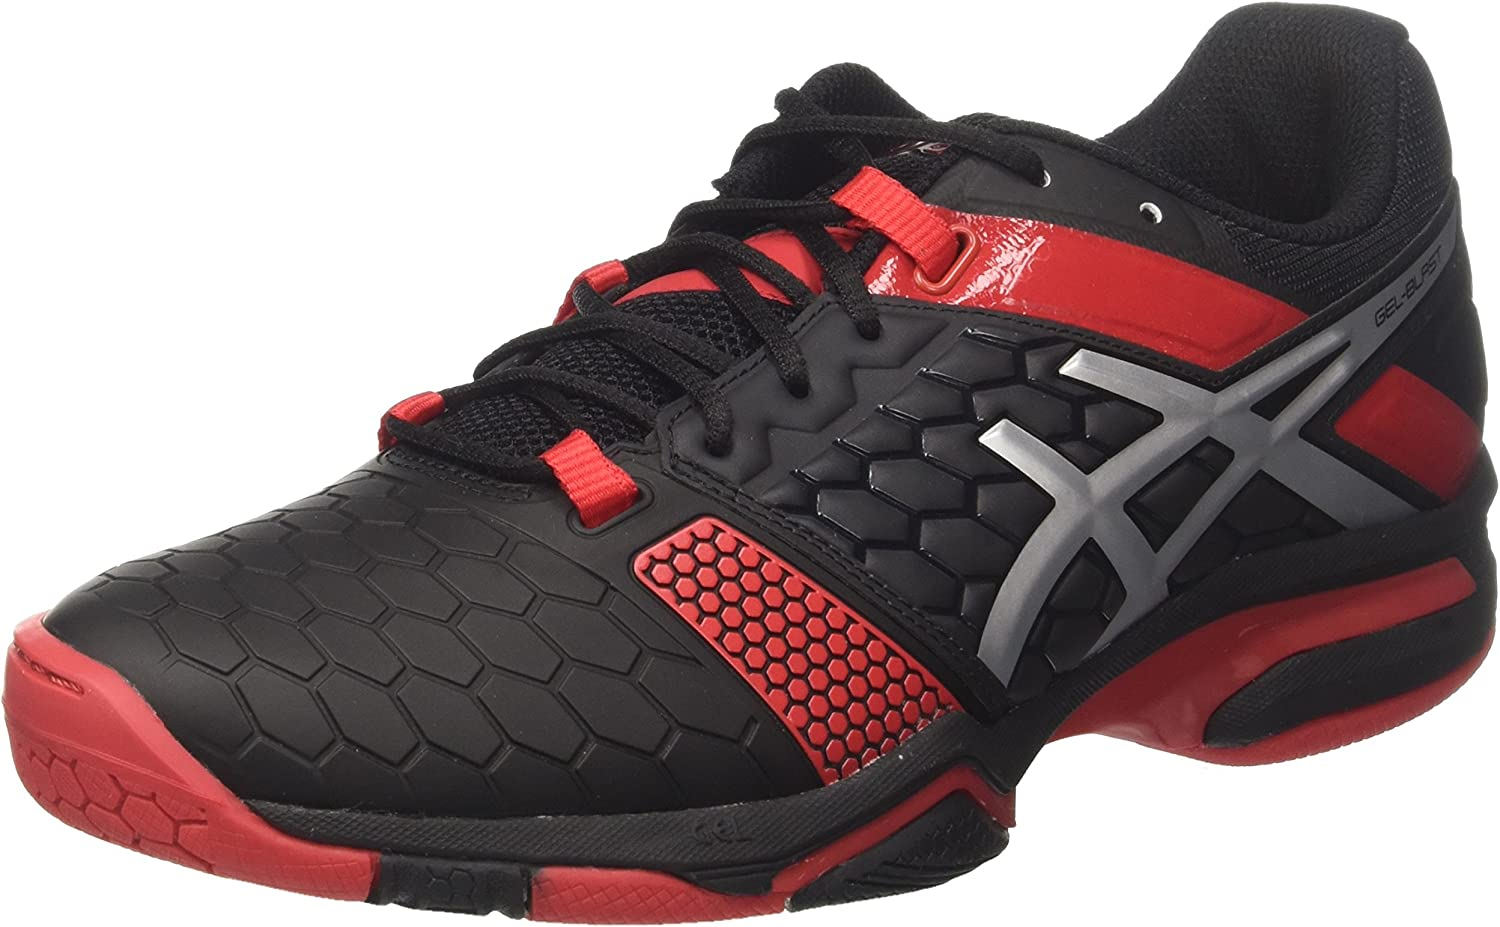 pluma Sanción protesta  ASICS Men's Gel-Blast 7 Handball Shoes: Amazon.co.uk: Shoes & Bags